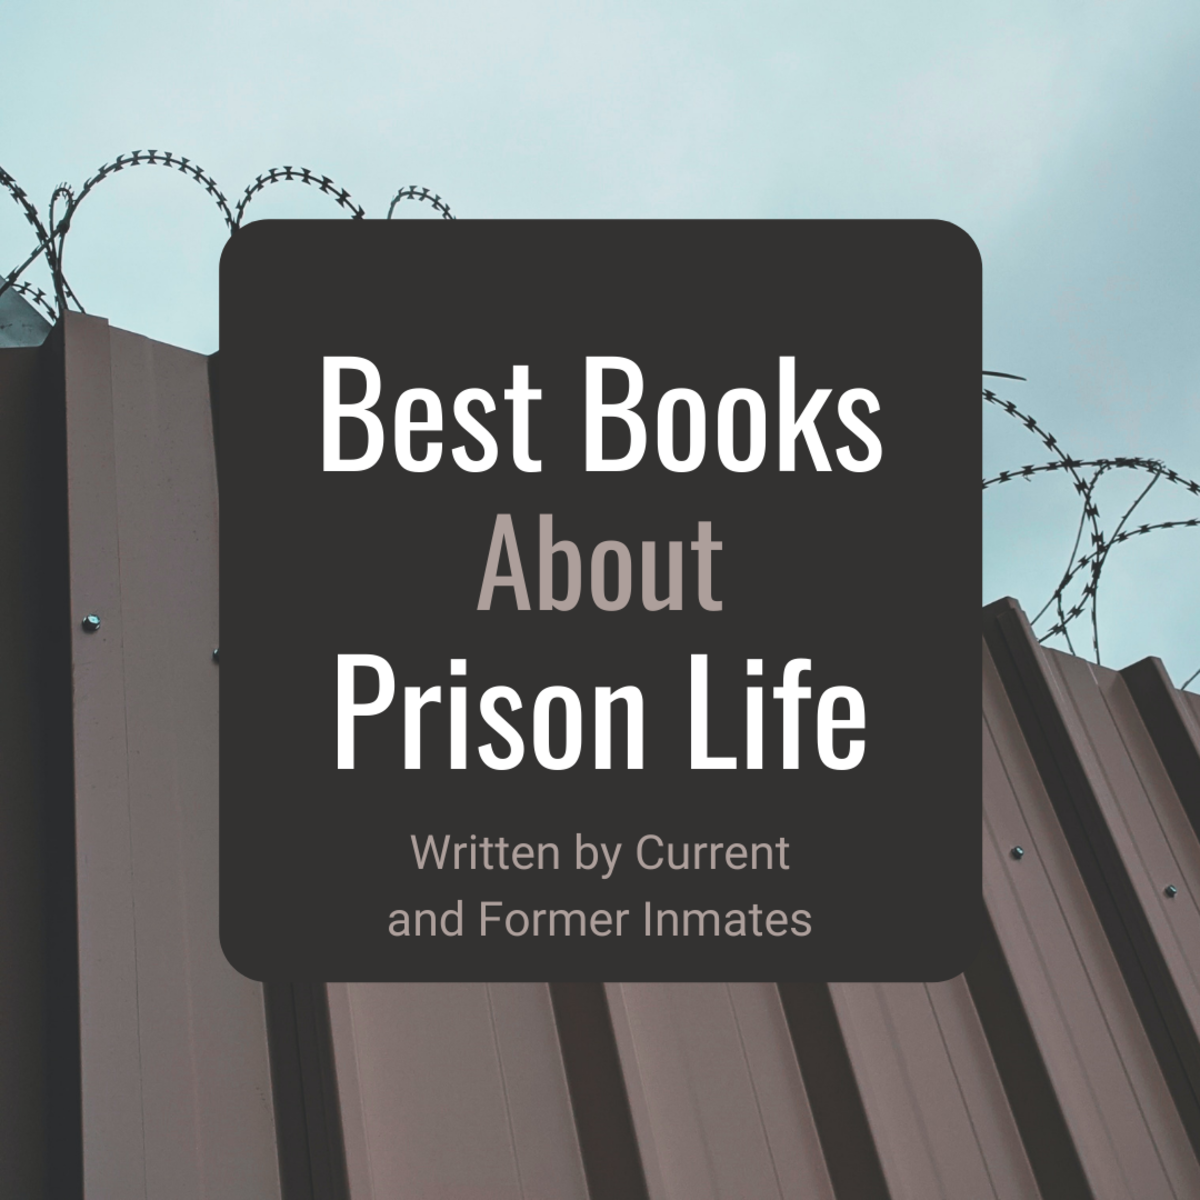 Discover some of my favorite books written by people who are currently (or were formerly) incarcerated.